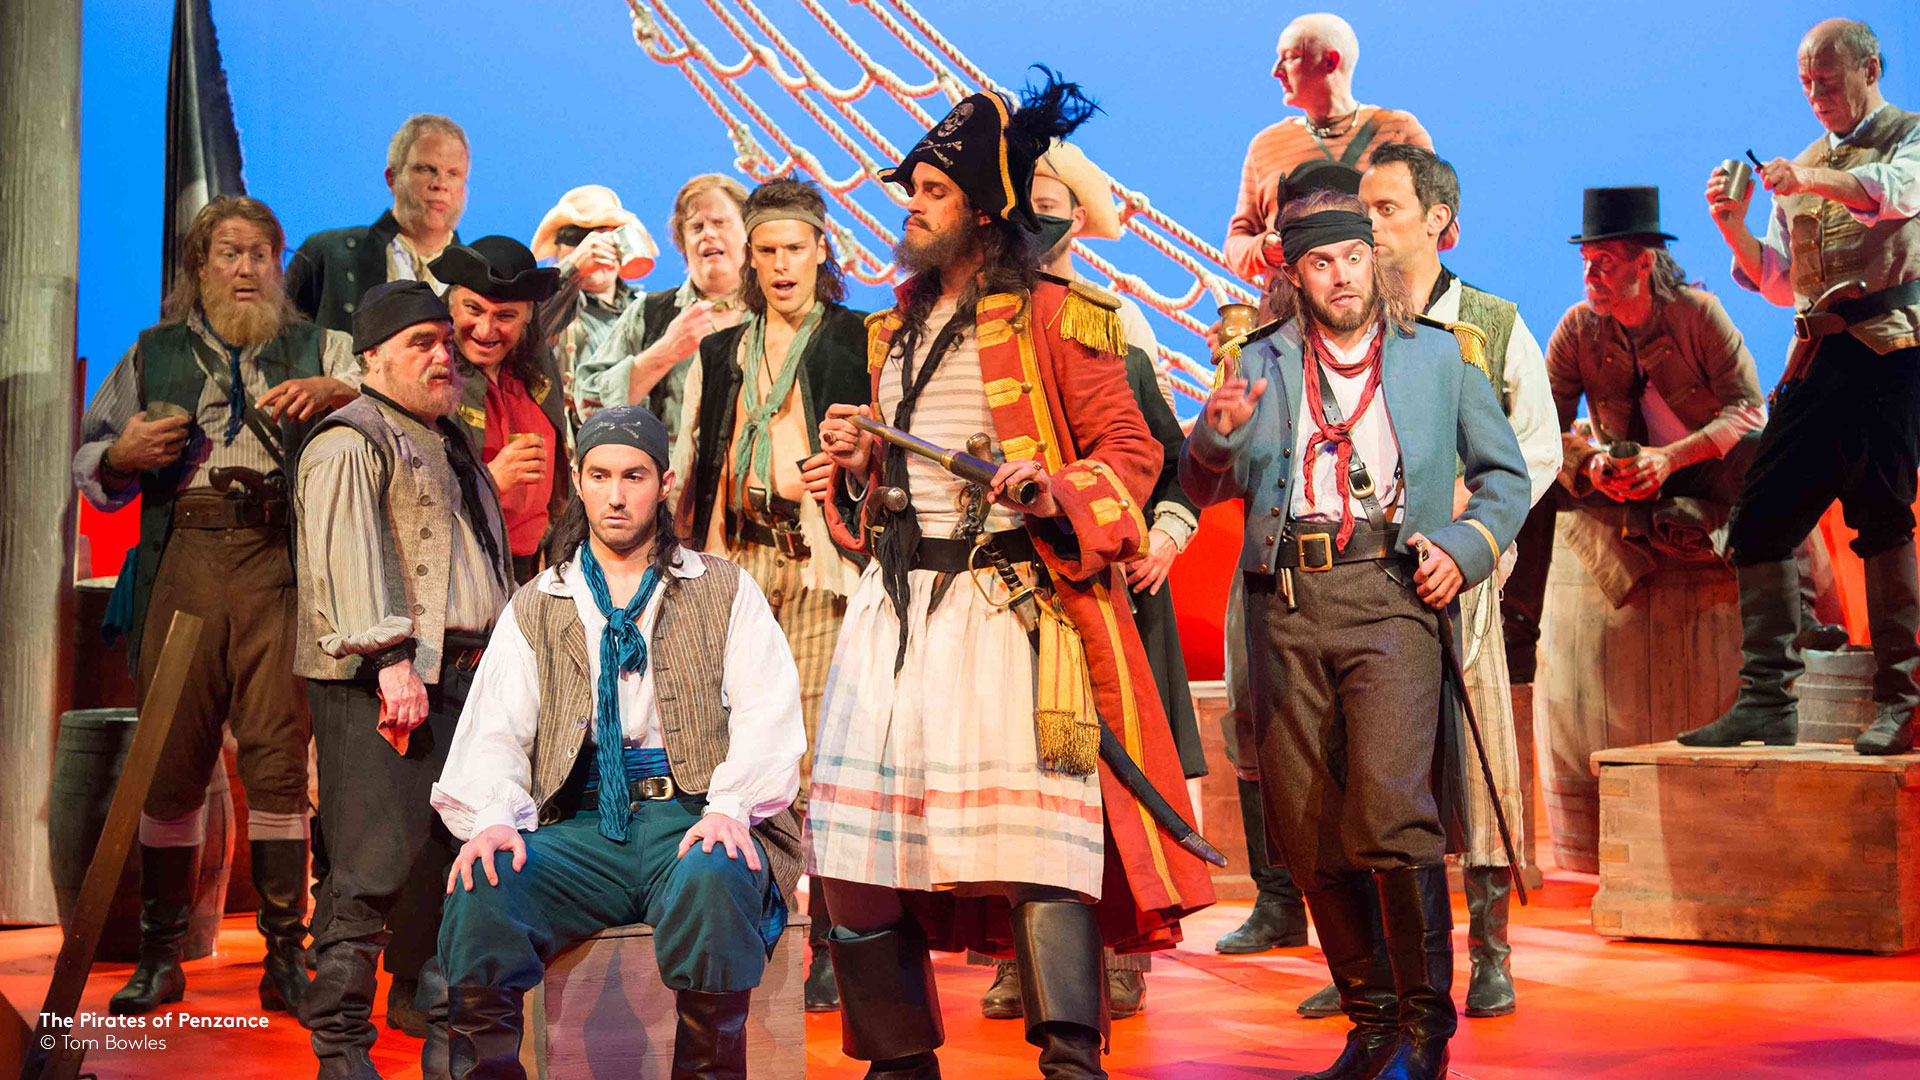 pirates on deck from ENO's Pirates of Penzance